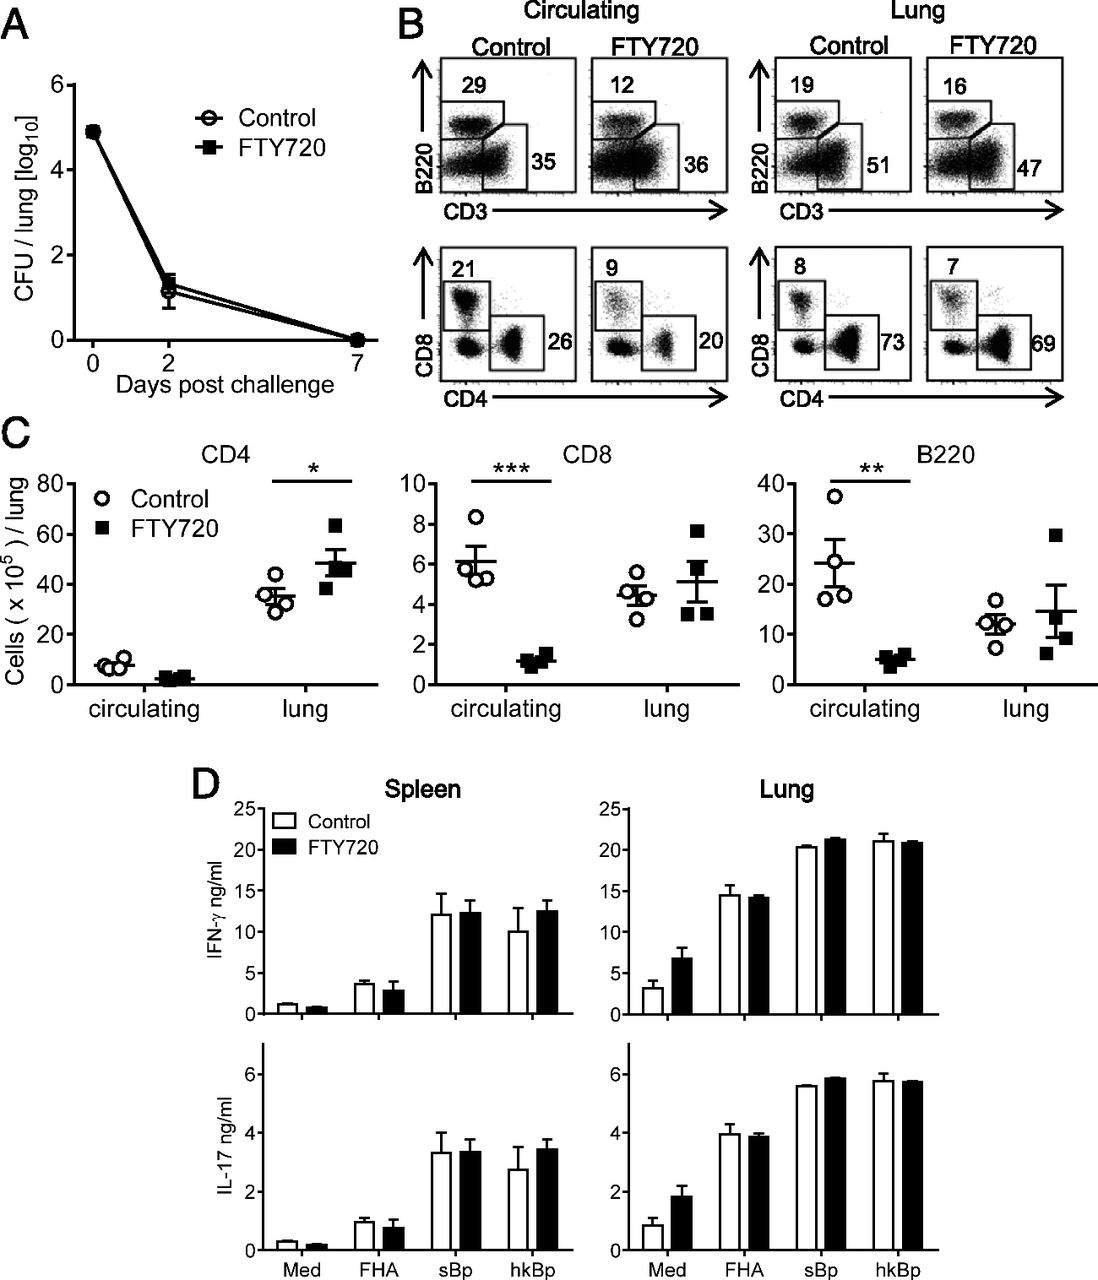 hight resolution of lung cd4 tissue resident memory t cells mediate adaptive immunity induced by previous infection of mice with bordetella pertussis the journal of